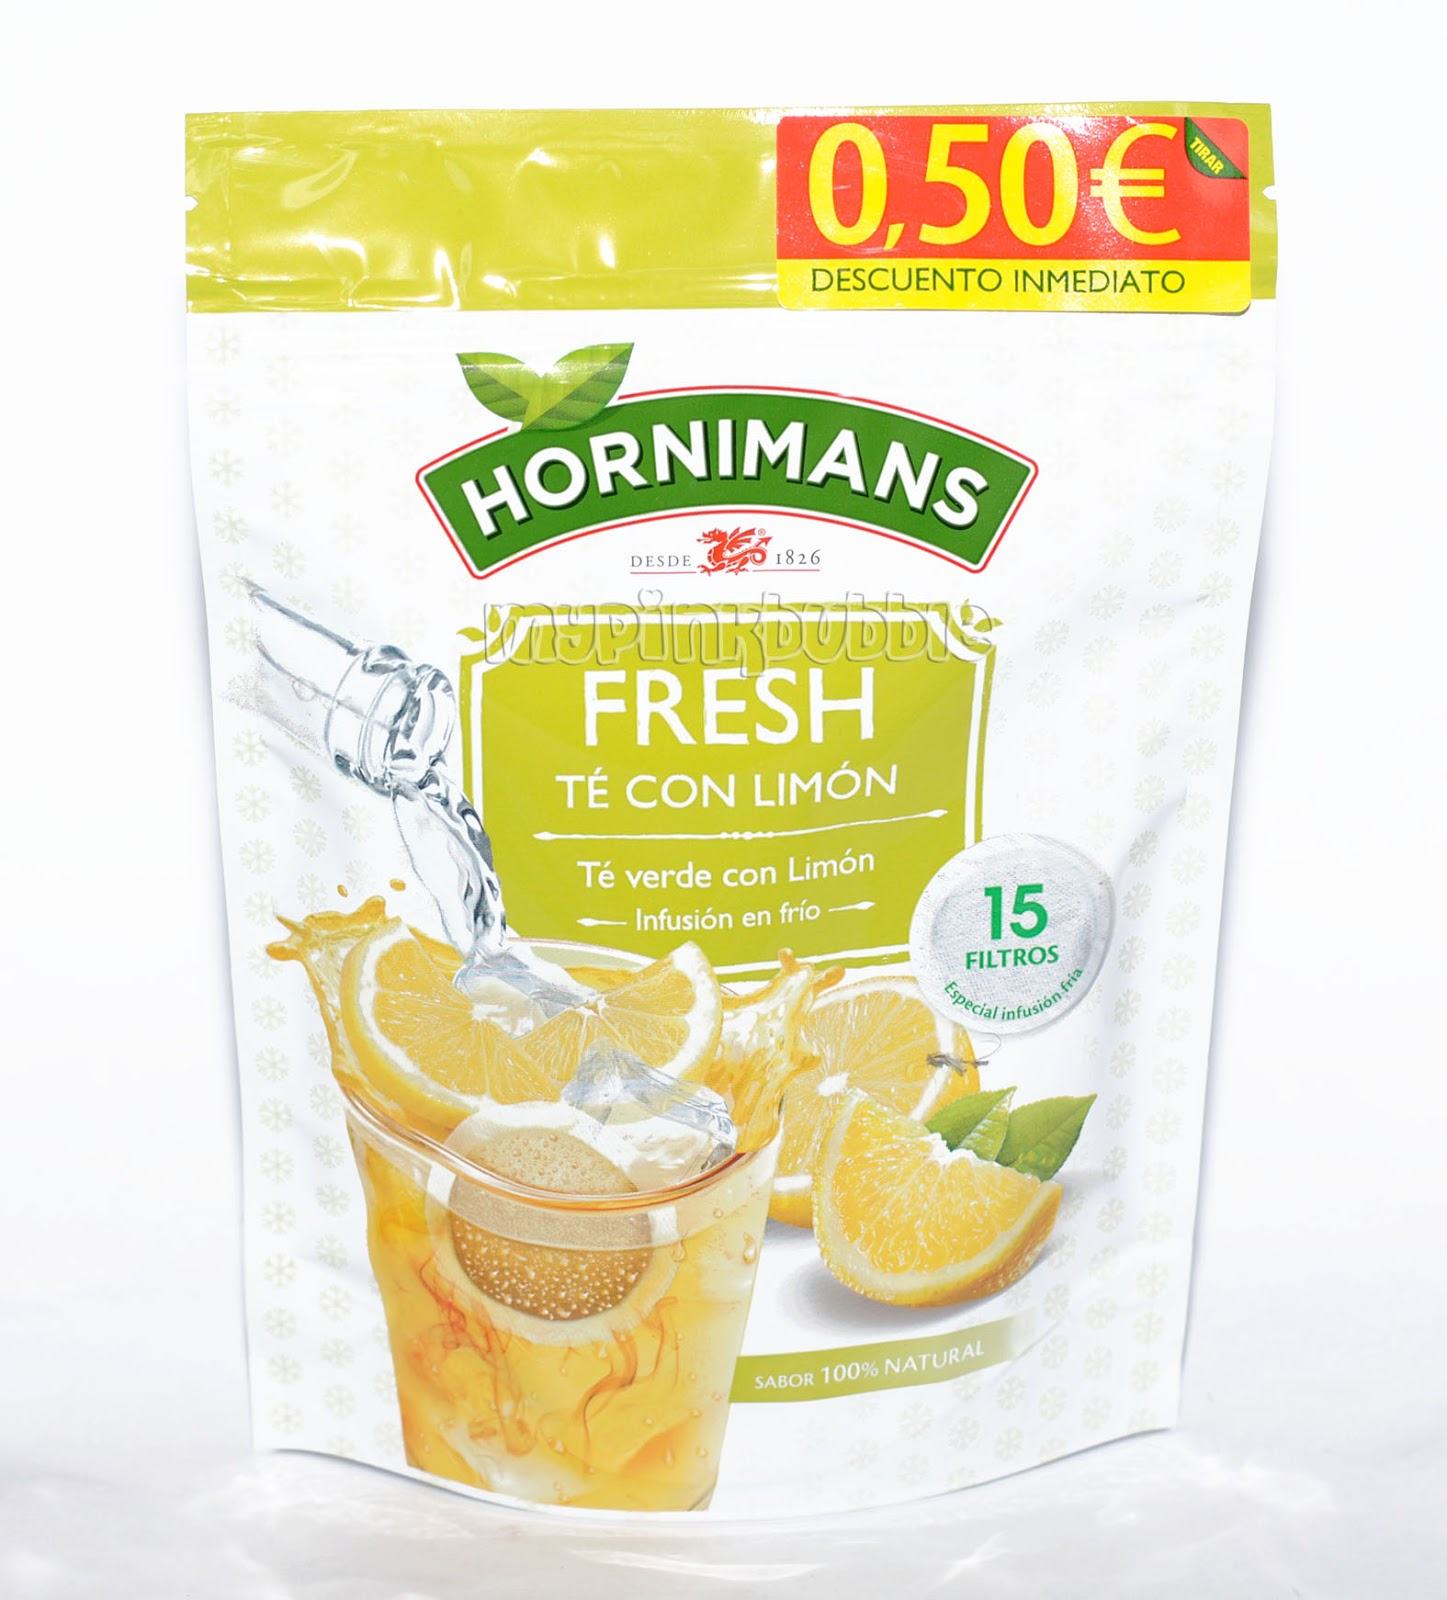 Hornimans Fresh te con limon